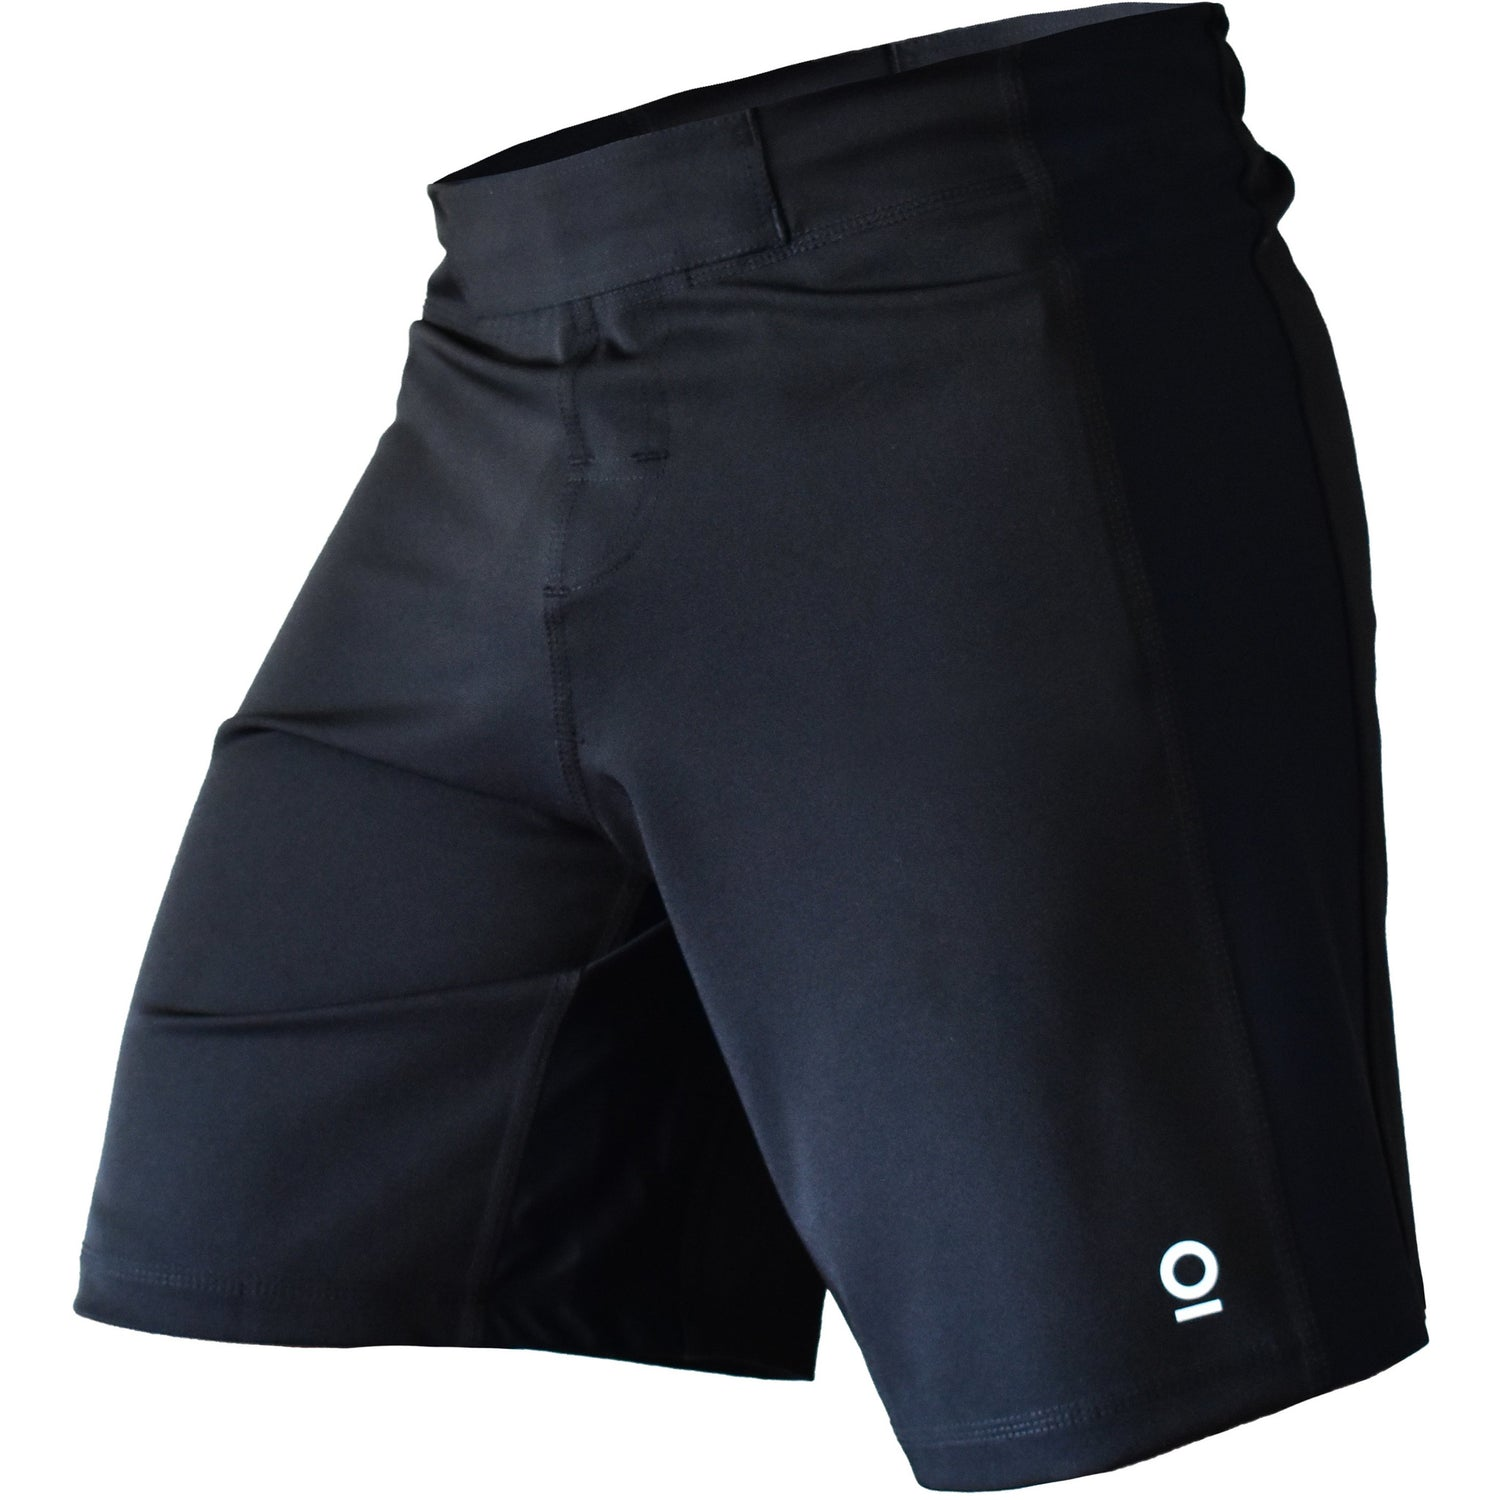 MMA/BJJ No-Gi Fight Shorts | Drawstring Closure - OPTIMAL HUMAN